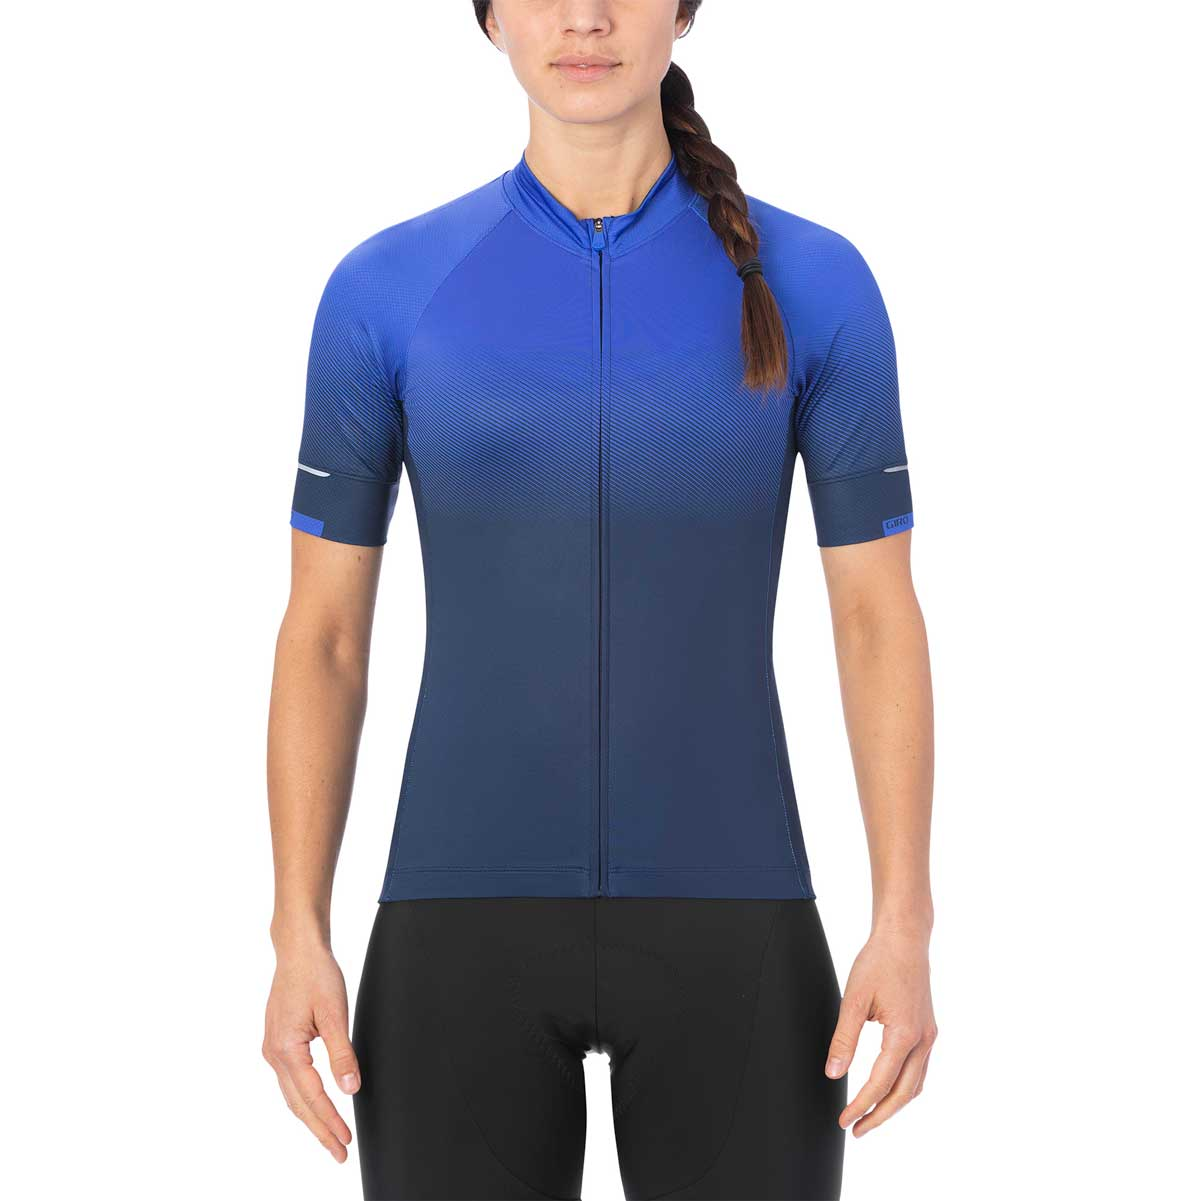 Giro women's Chrono Expert Jersey in Midnight Transition on model front view